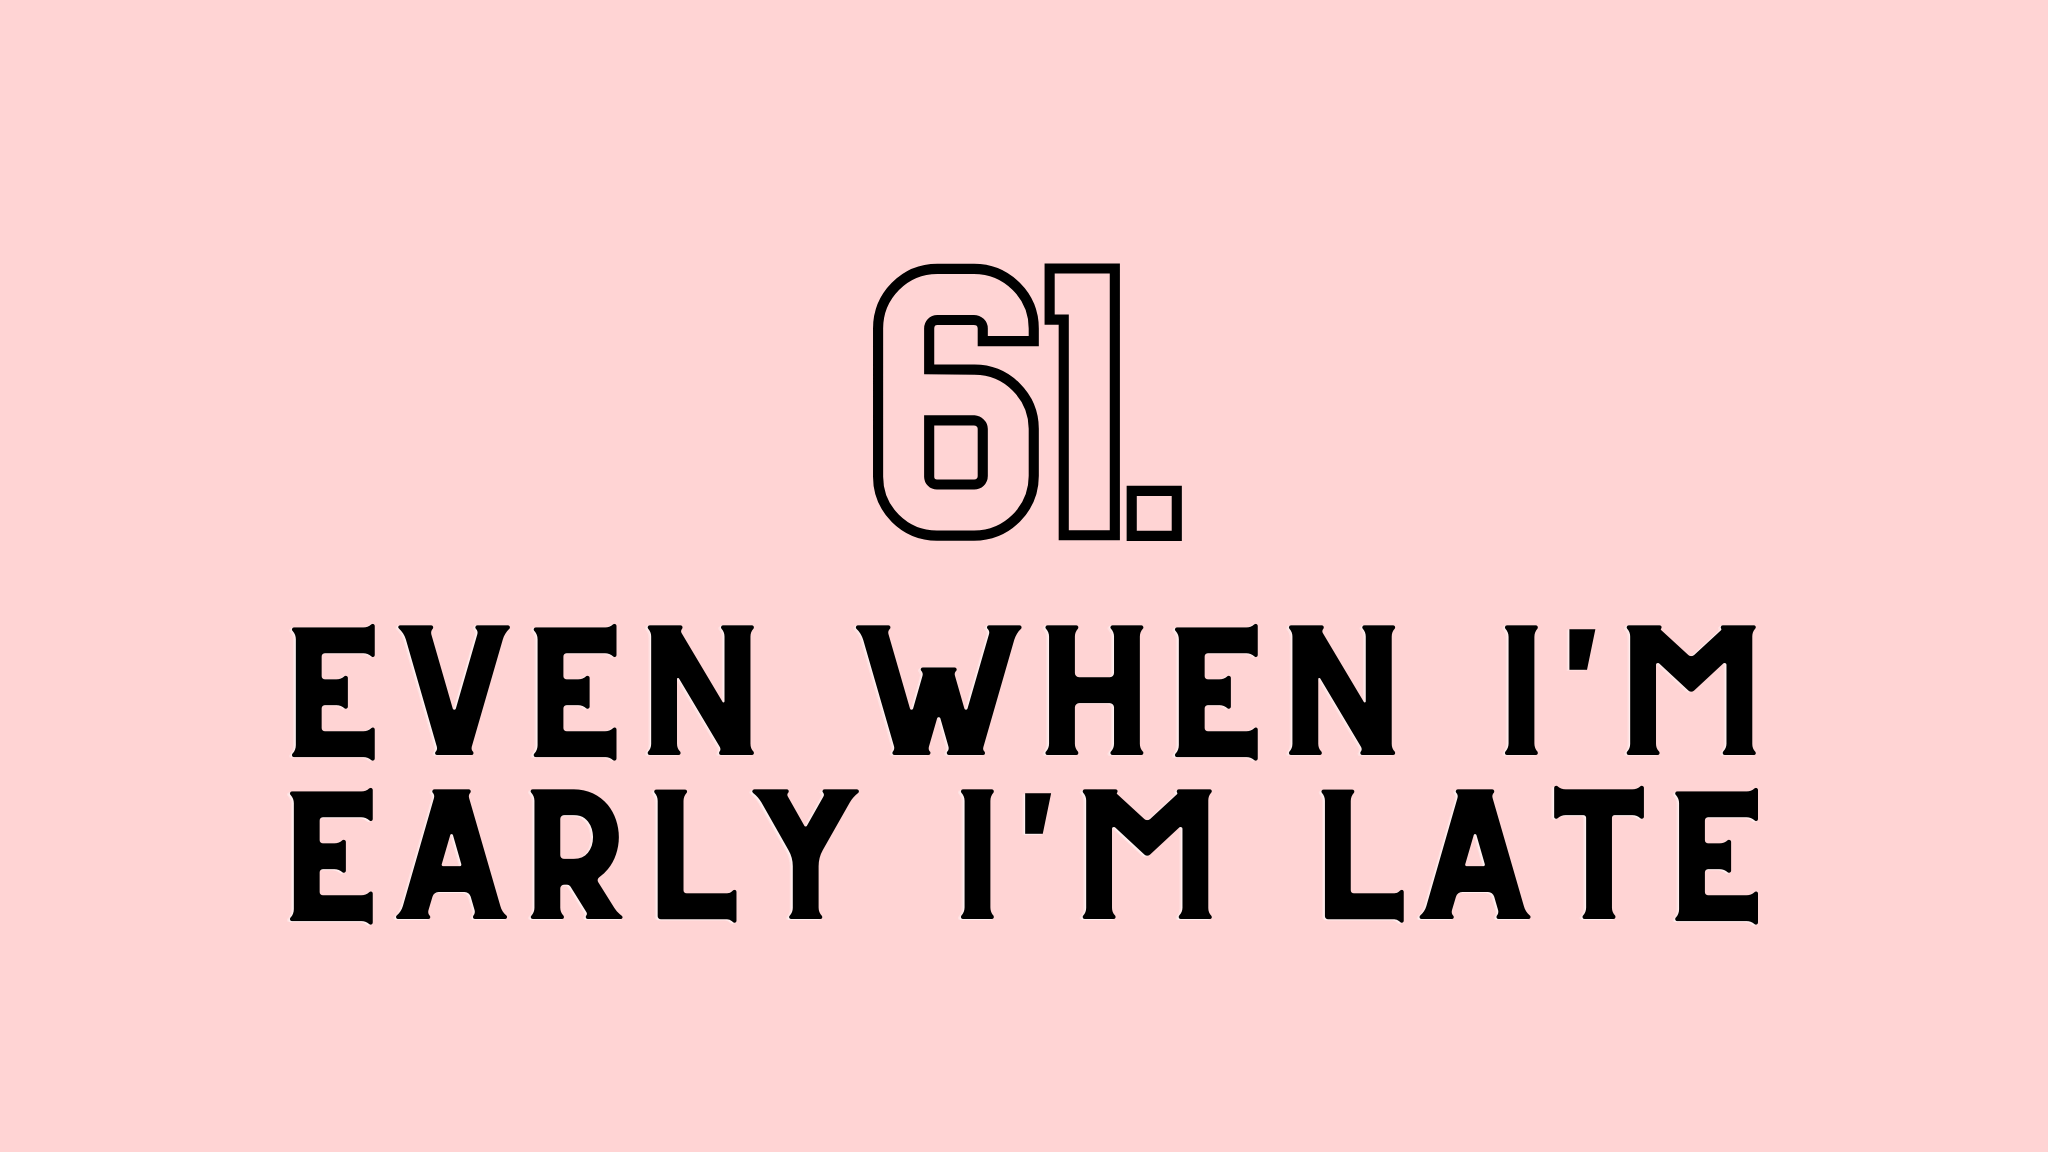 even when I'm early I'm late